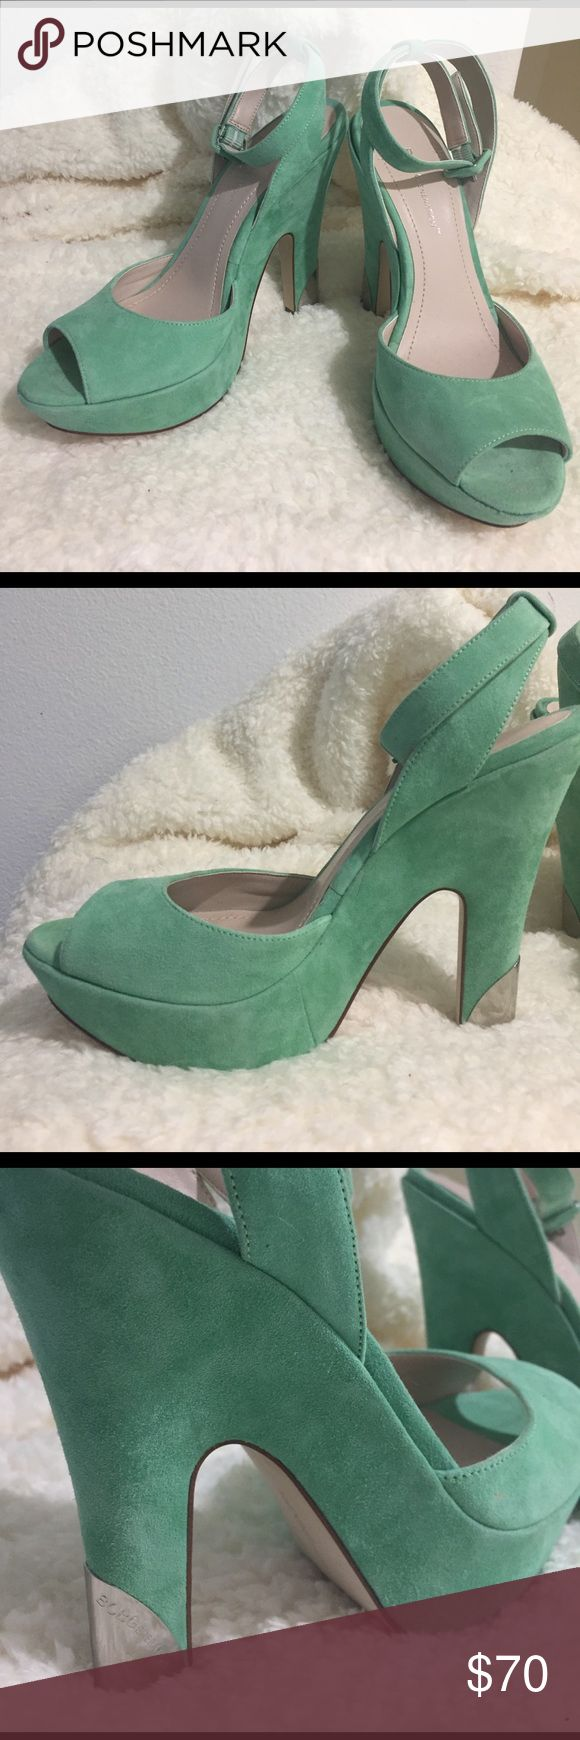 BCBGeneration mint wedges. NWOT. NWOT Mint Greene, suede, wedges with silver accents on the heel and BCBGeneration logo in fine detail. Peep toe heel with ankle strap. Been sitting in my closet for two years, (mint looks terrible on my skin tone), tread shows no wear! Seeking fashionable home! BCBGeneration Shoes Wedges